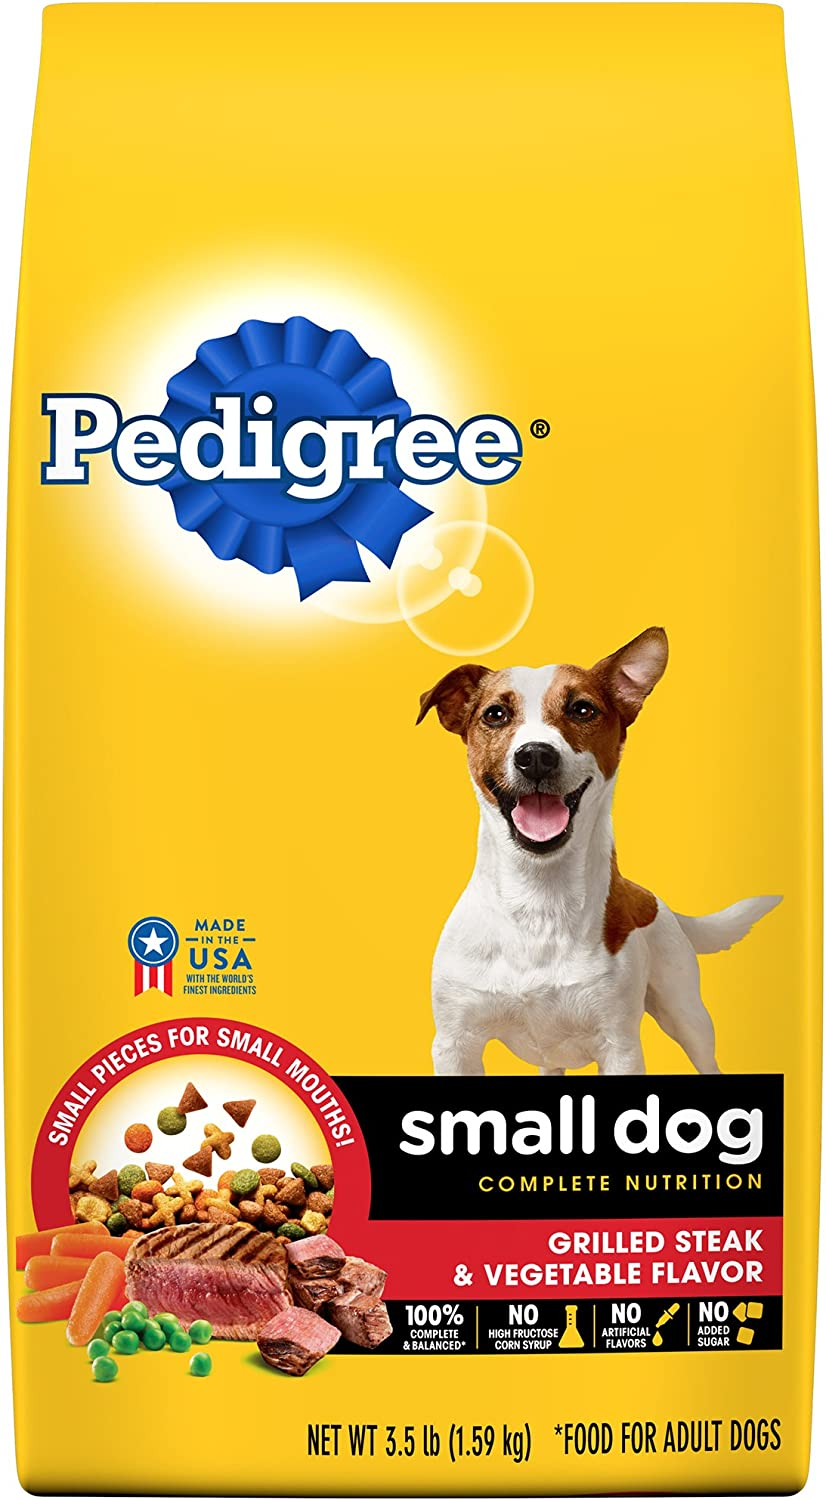 Pedigree Small Dog Complete Nutrition Adult Dry Dog Food Grilled Steak And Vegetable Flavor, (4) 3.5 Lb. Bags